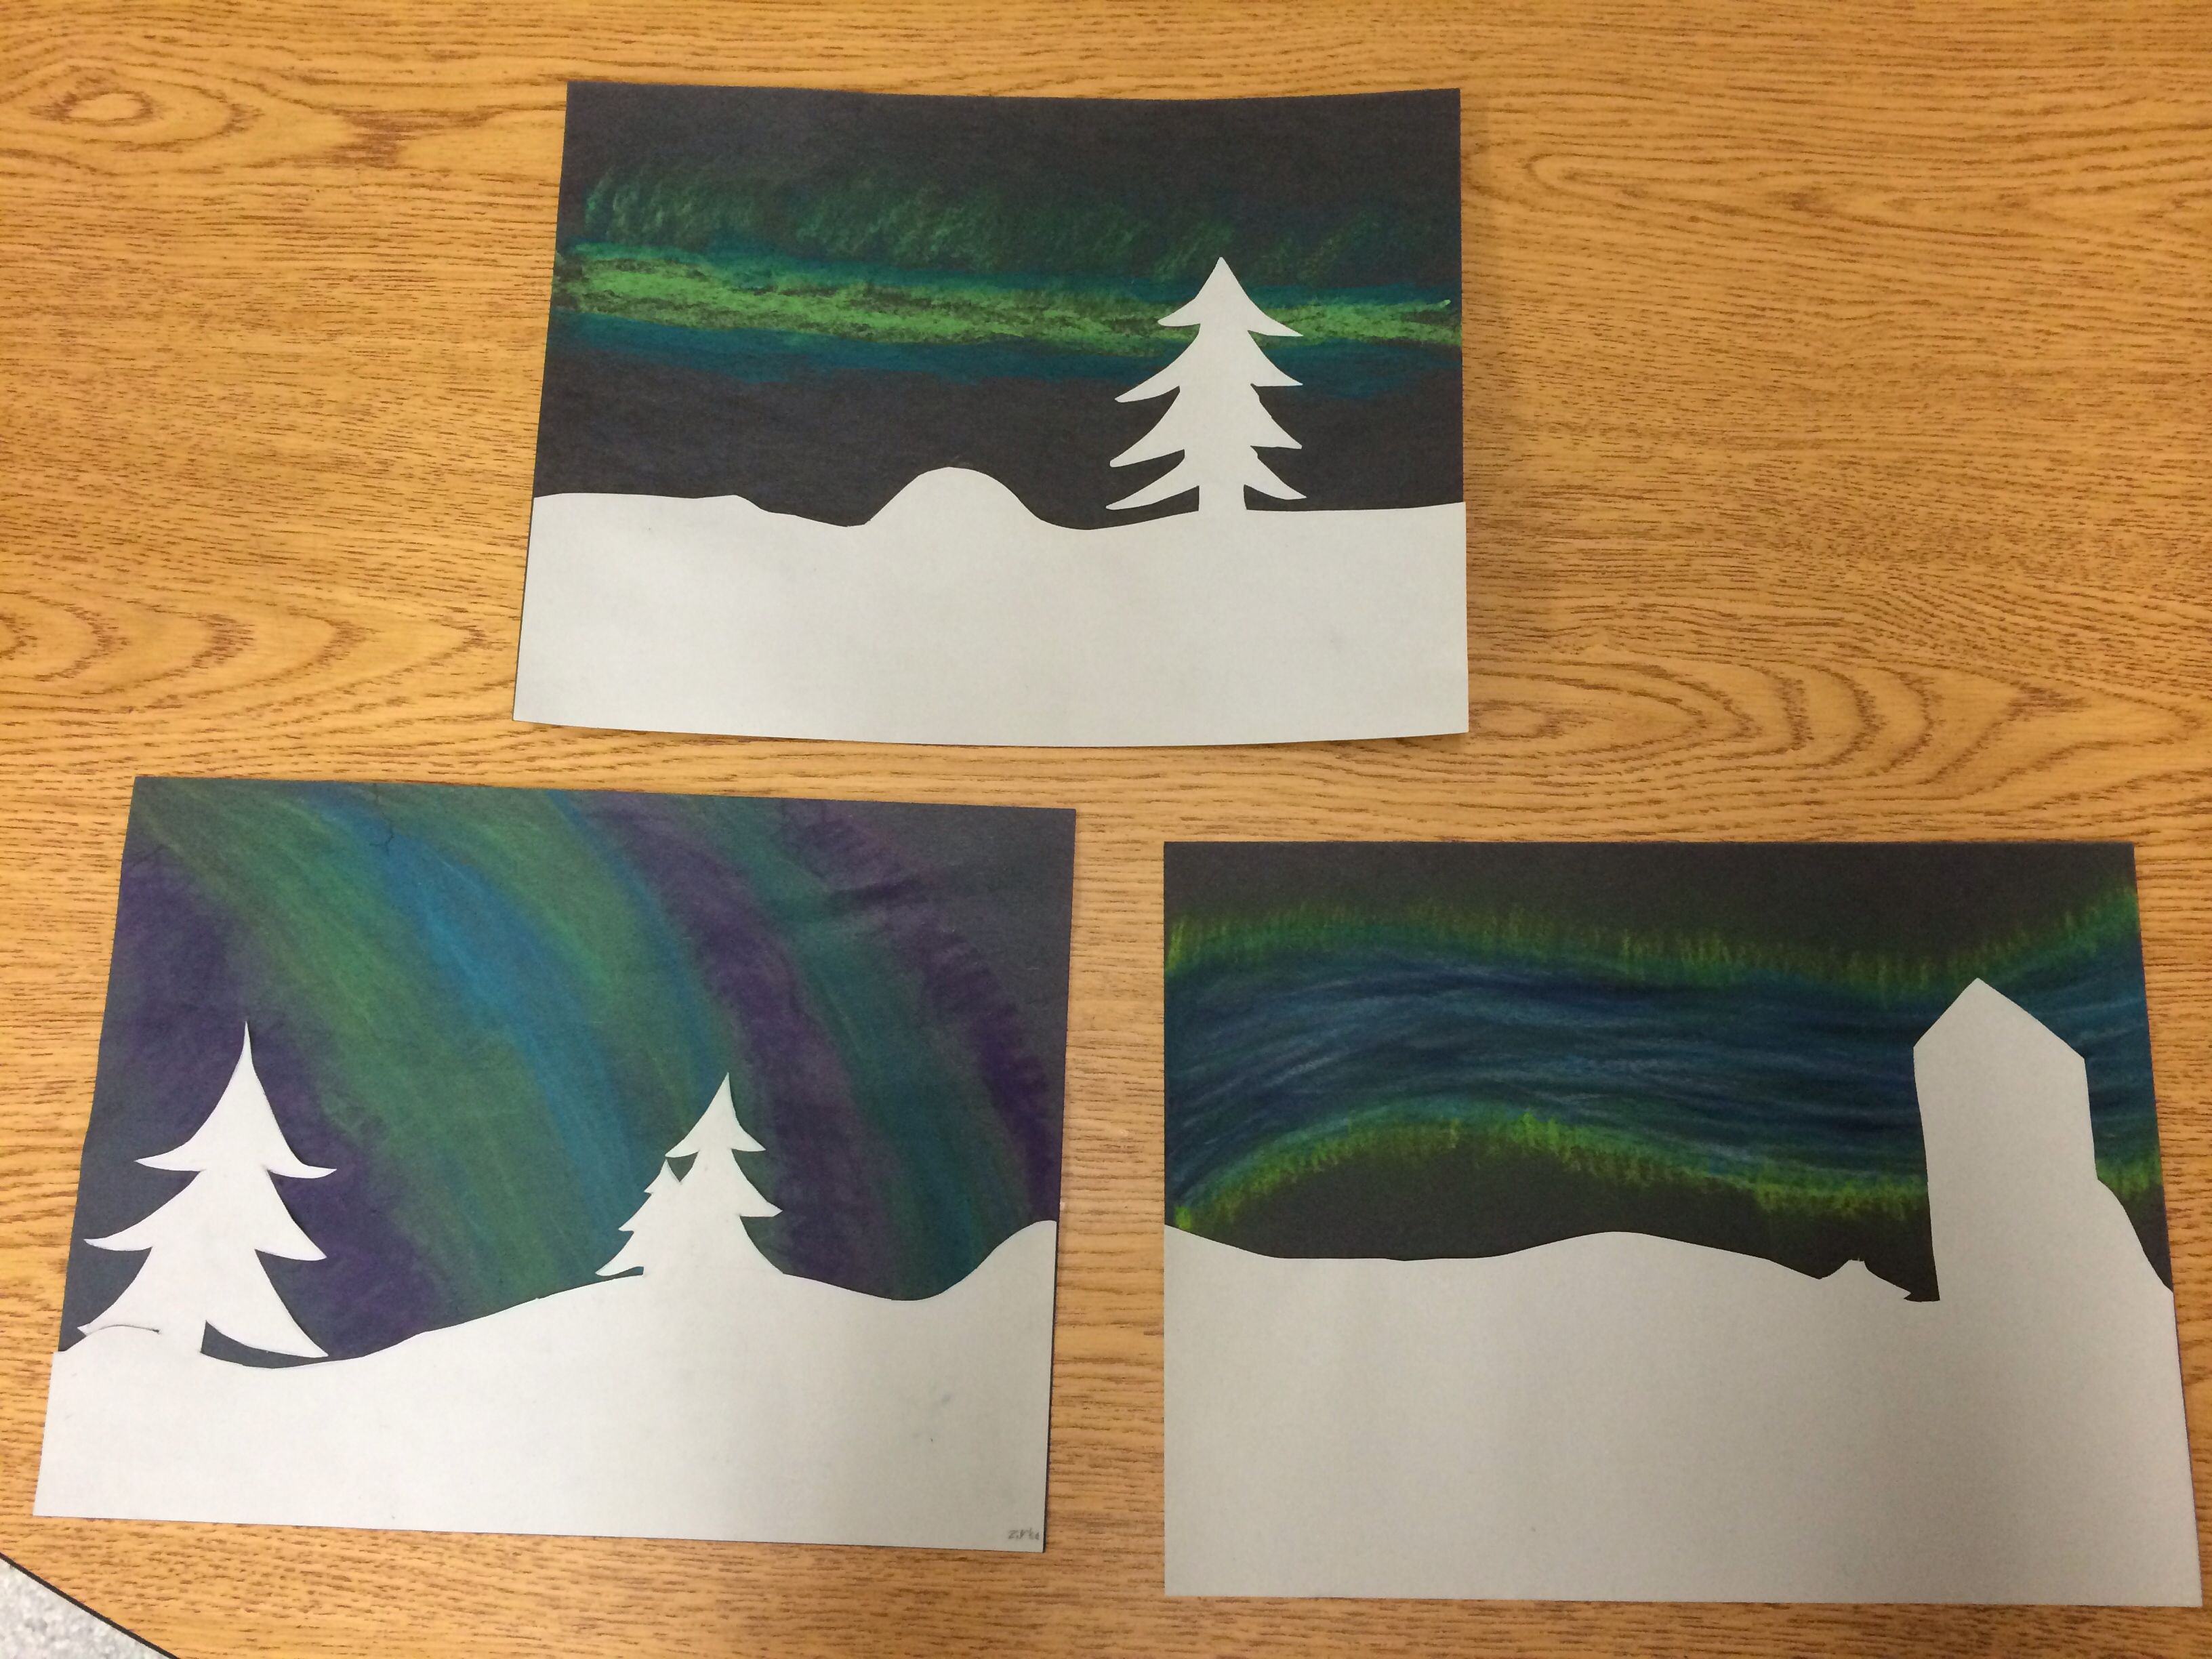 Northern Lights Night Sky Art Project While Studying